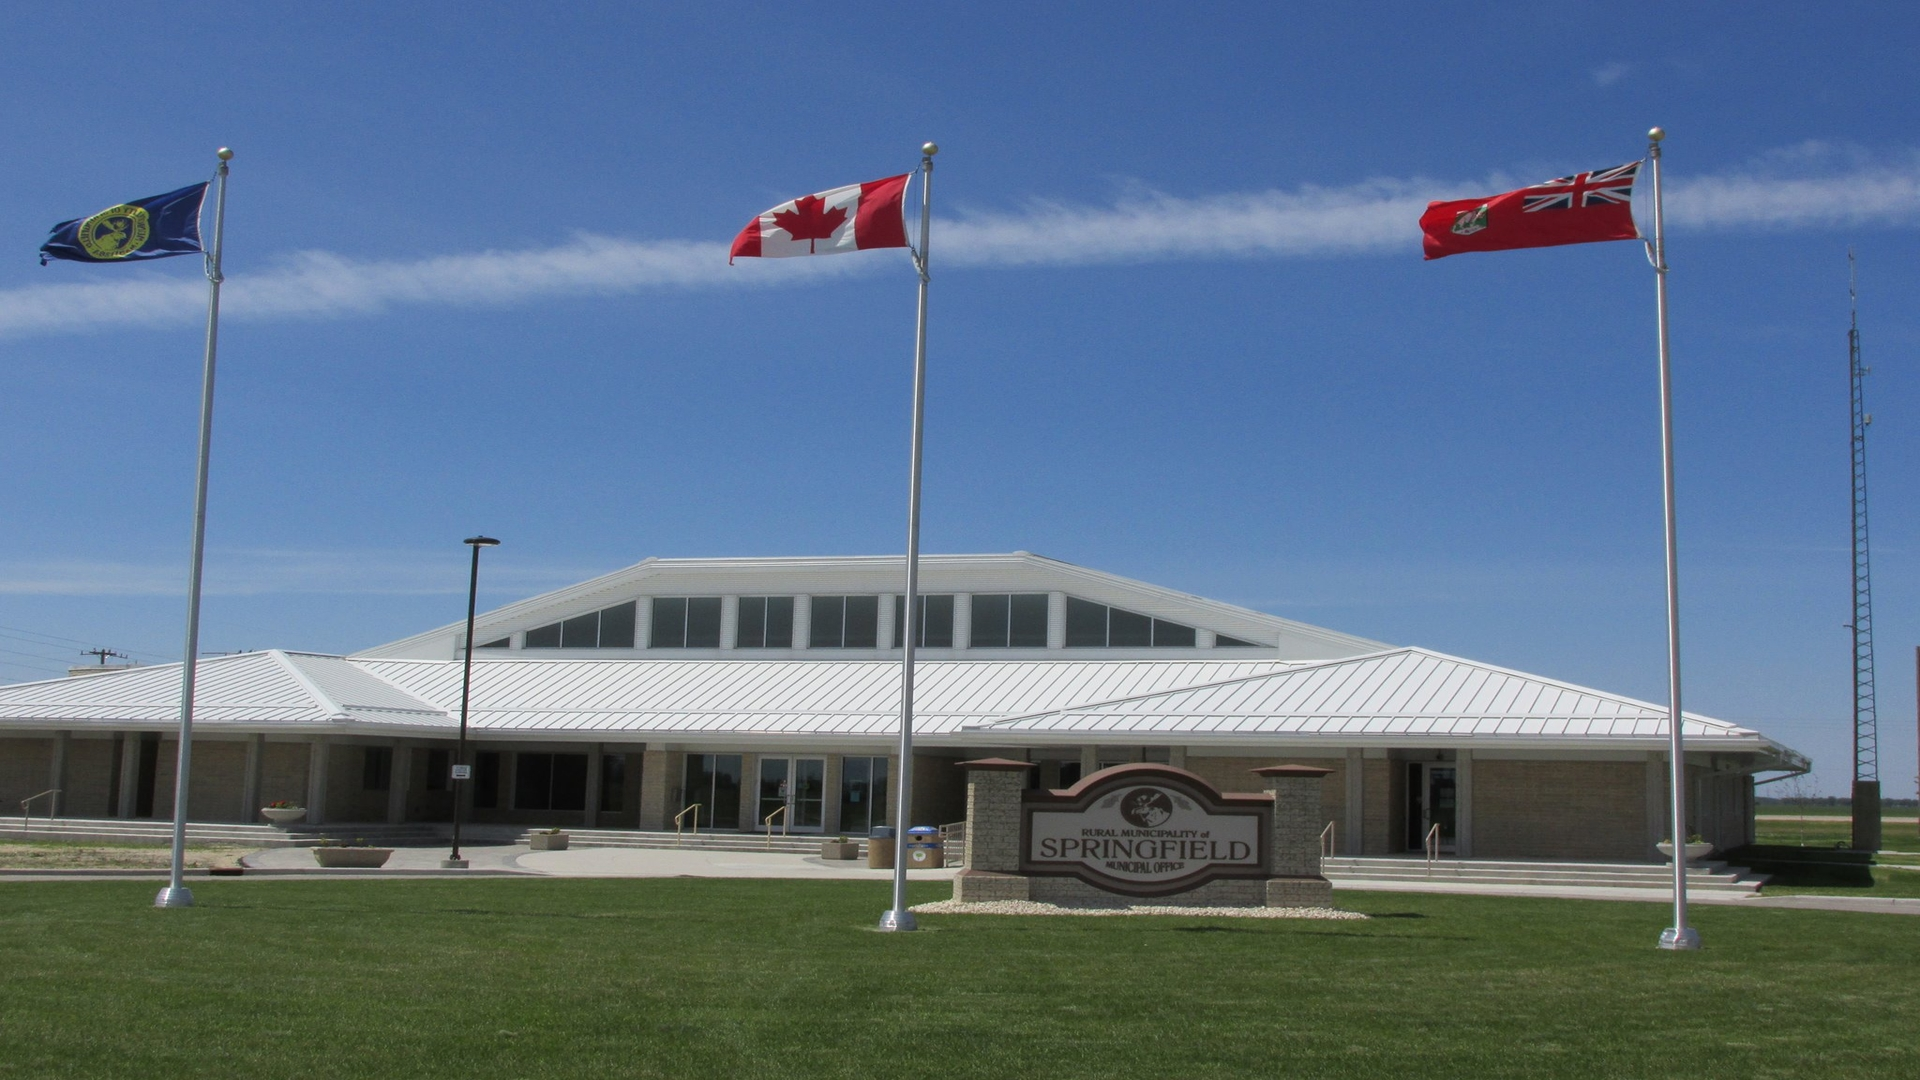 RM of Springfield Manitoba's First Rural Municipality